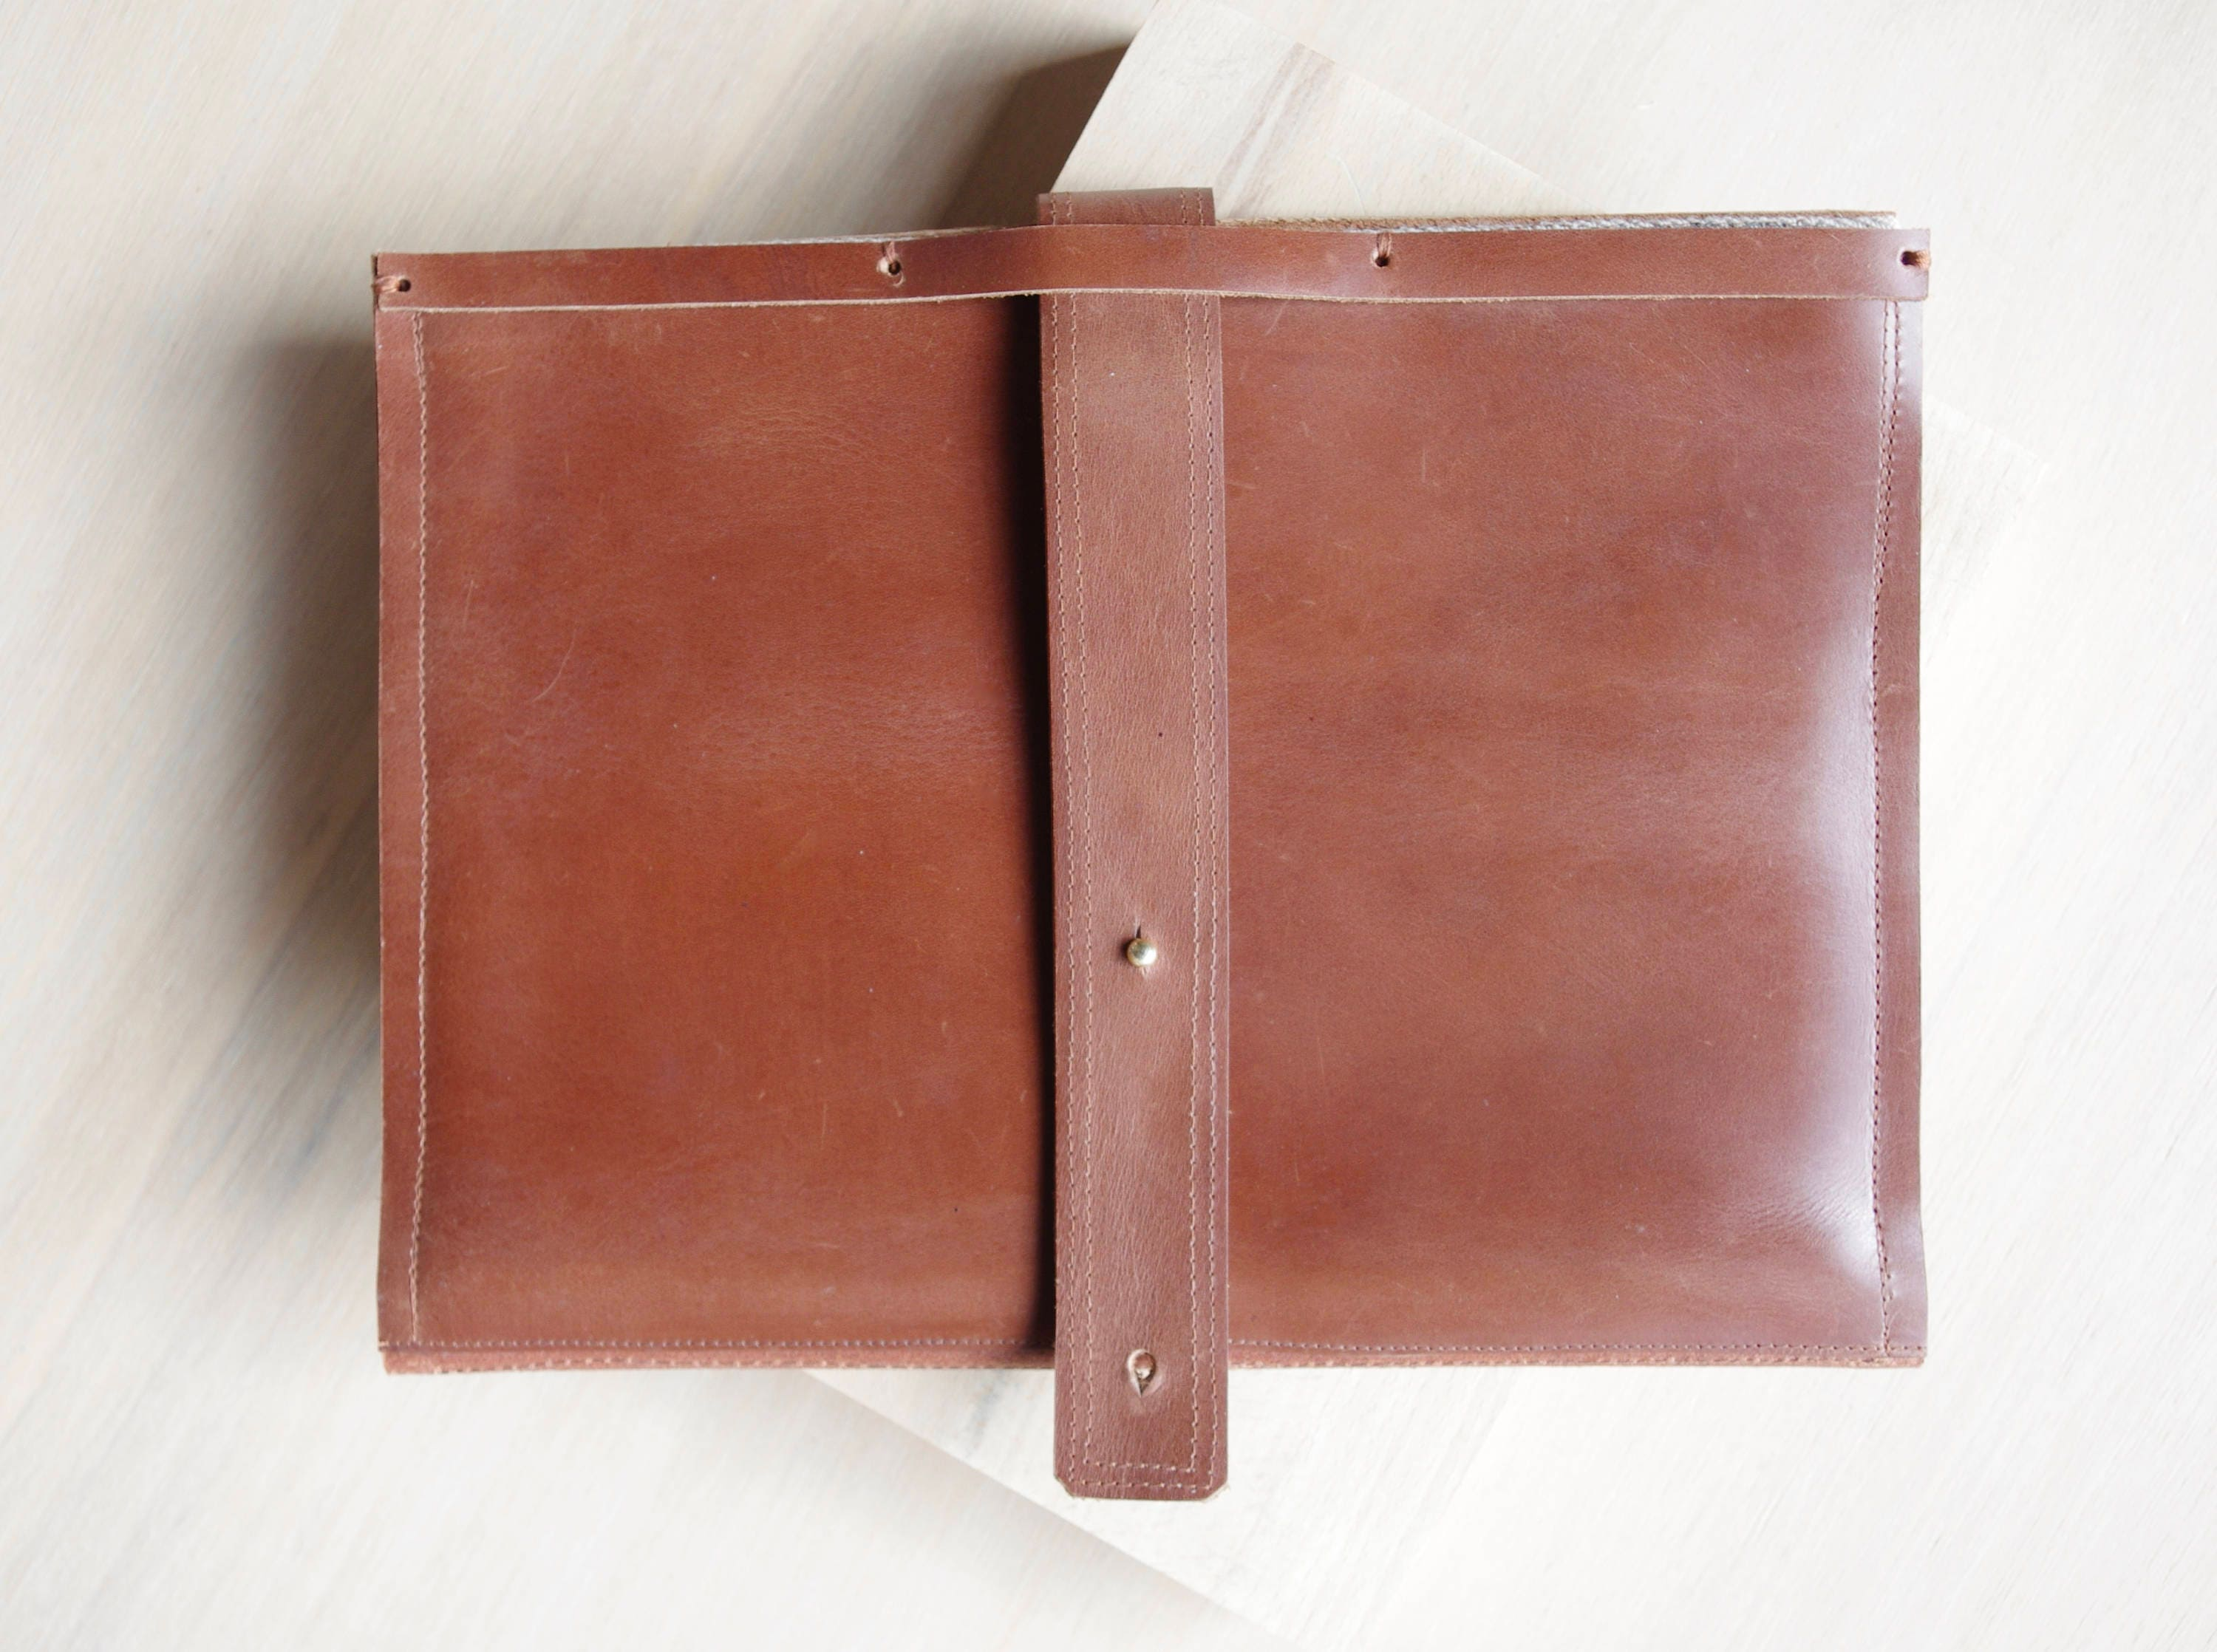 Handmade Brown Leather Portfolio iPad Sleeve and A4 NotePadDocument or Business Folder